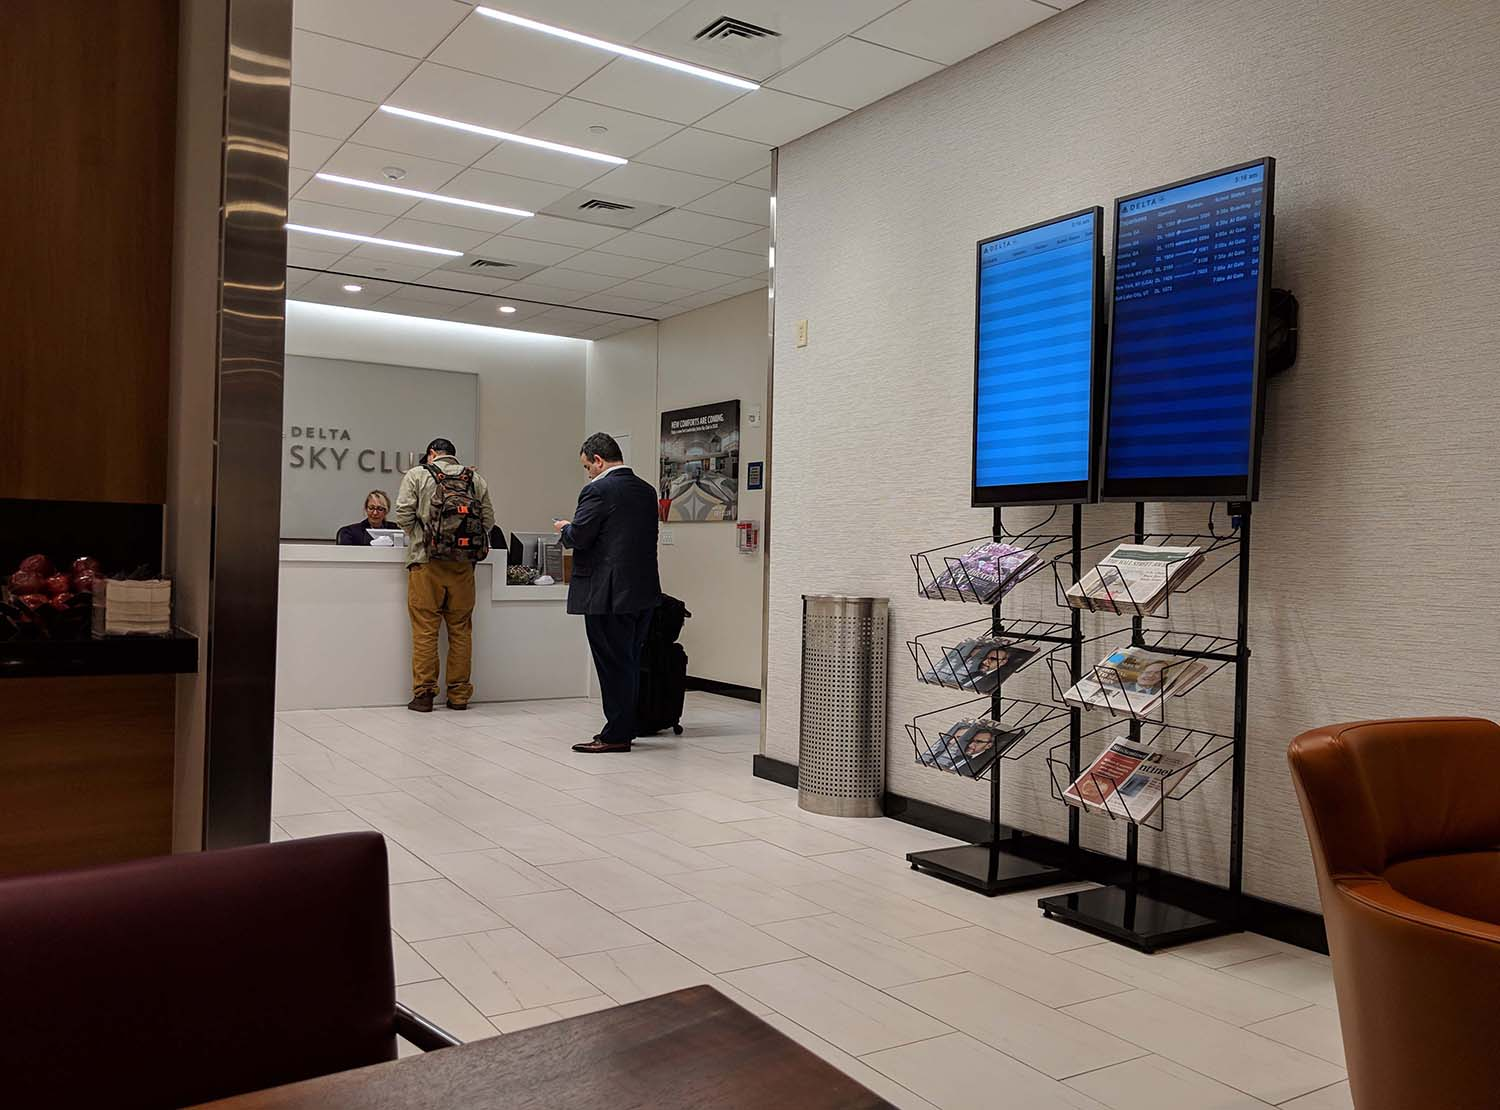 Delta Sky Club in Fort Lauderdale reception